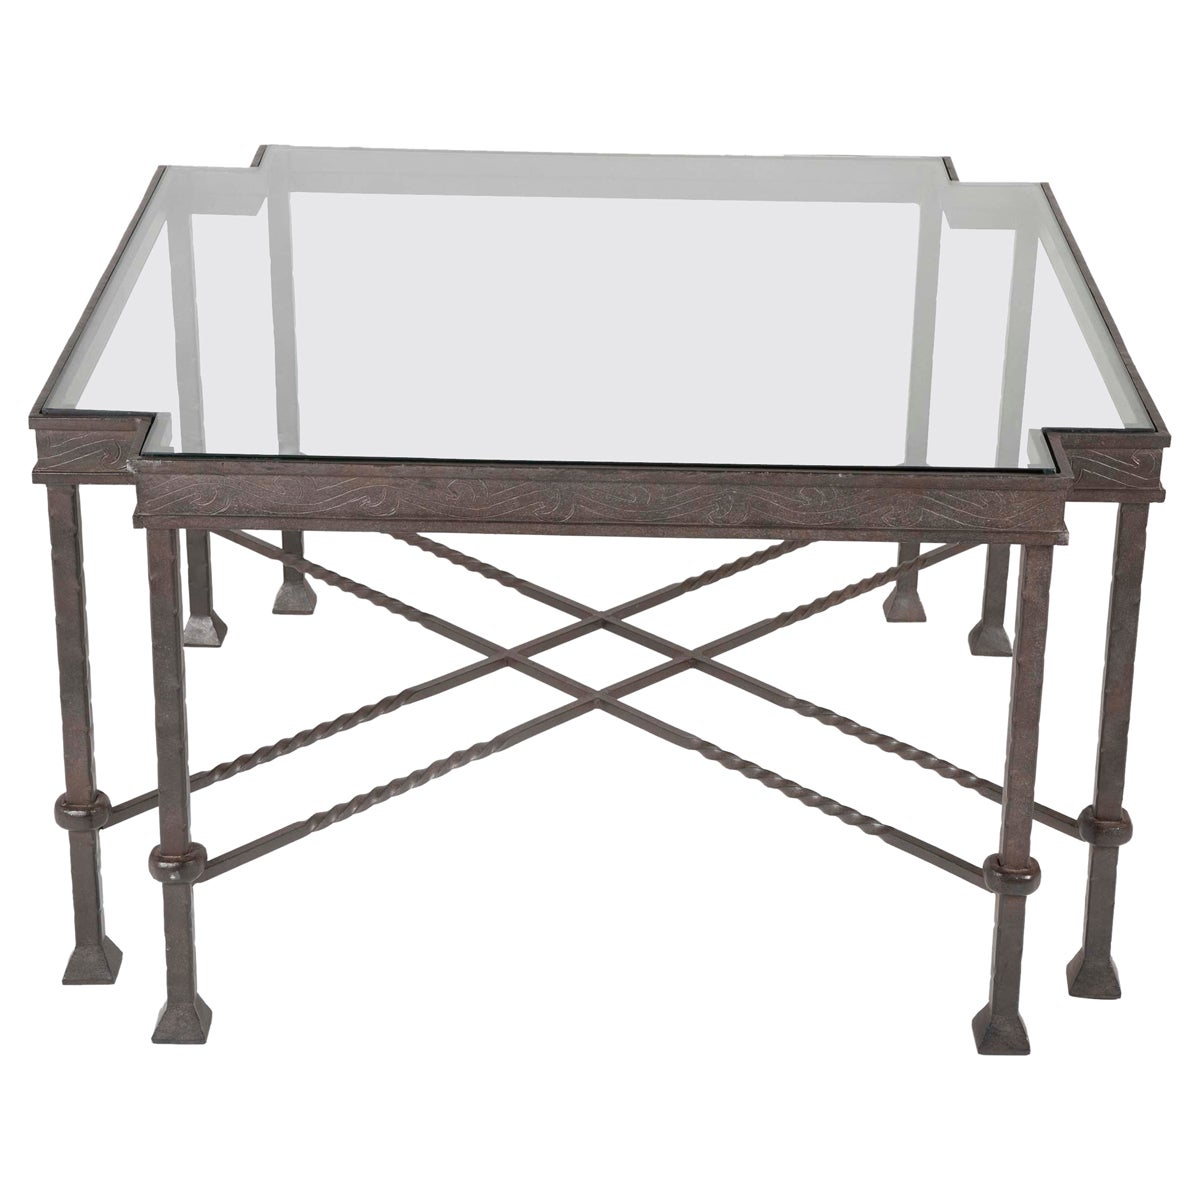 Diego Giacometti Style Wrought Iron Side Table with Glass Top